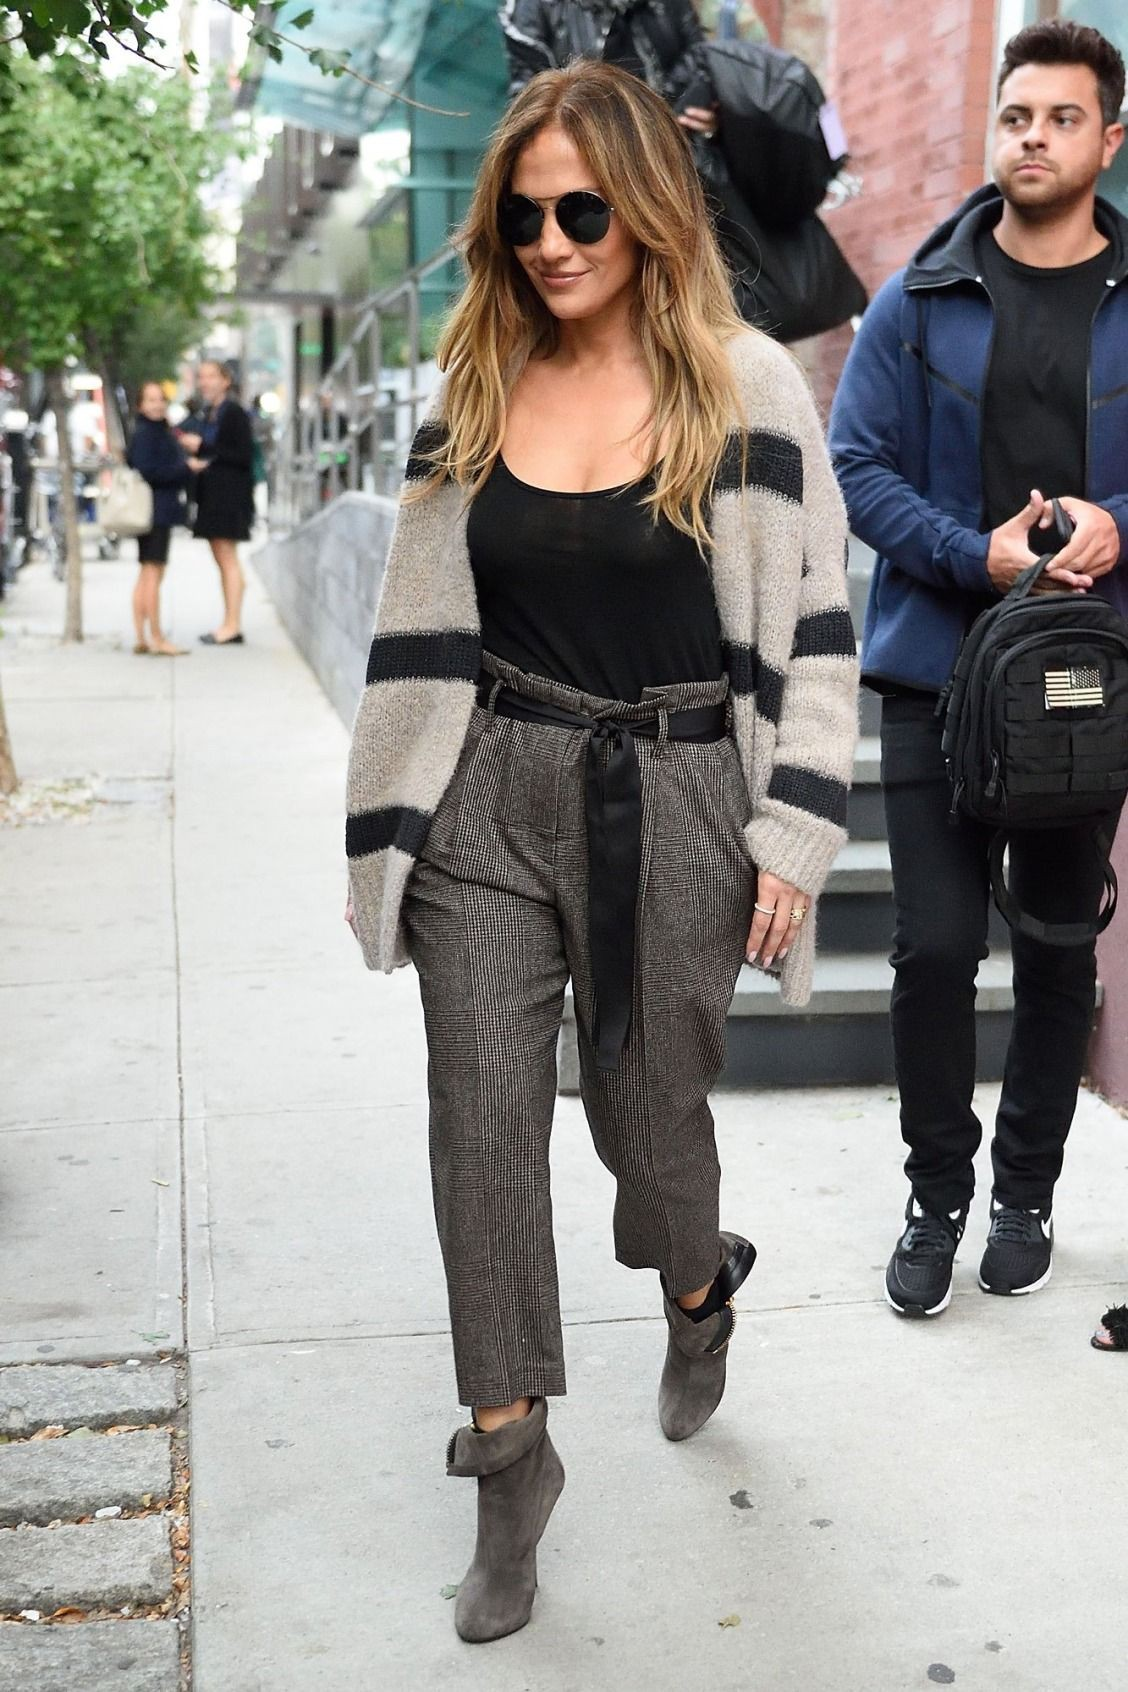 Outfit ideas styling paperbag pants paper bag pant, paperbag waist